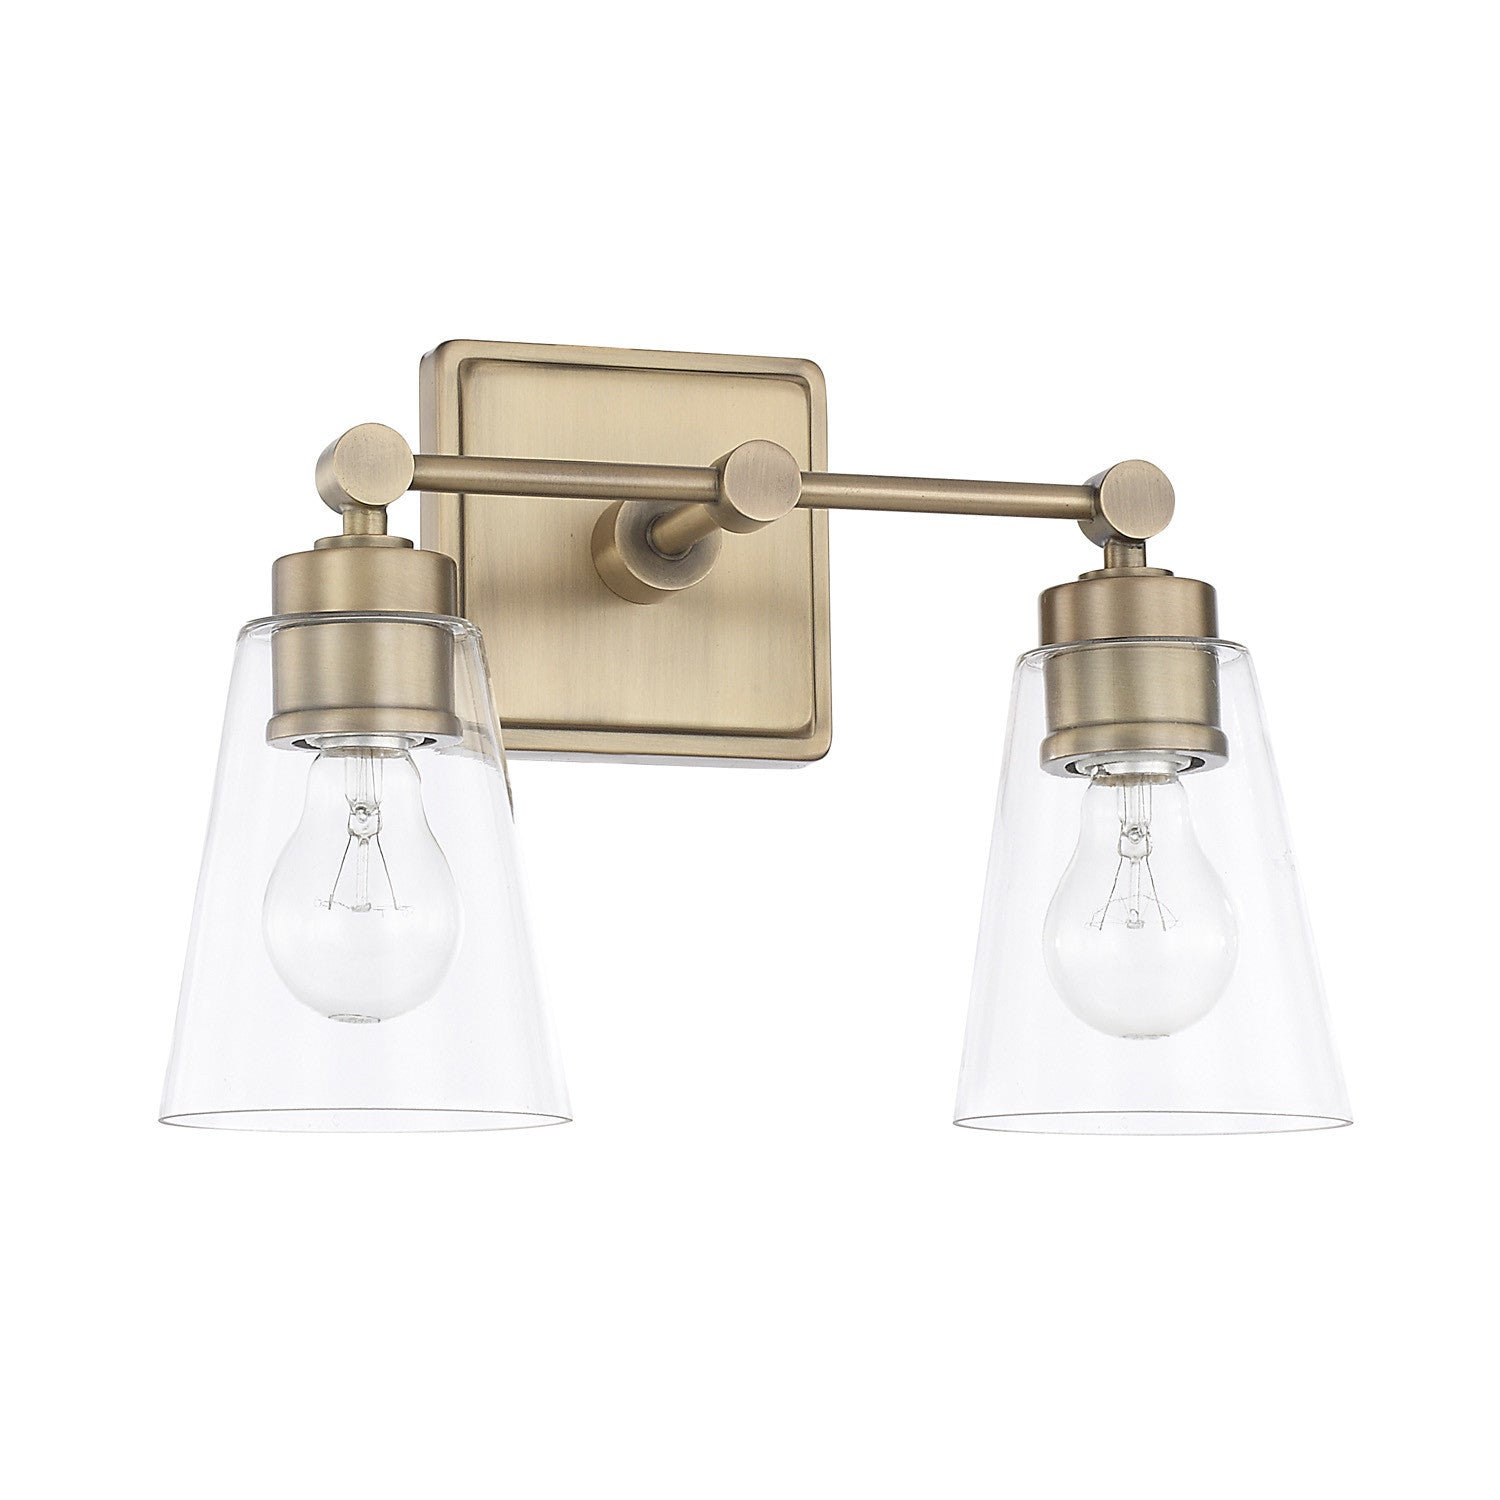 2 Light Enright Vanity in Aged Brass with clear cone shaped glass shades by Capital Lighting 121821AD-432